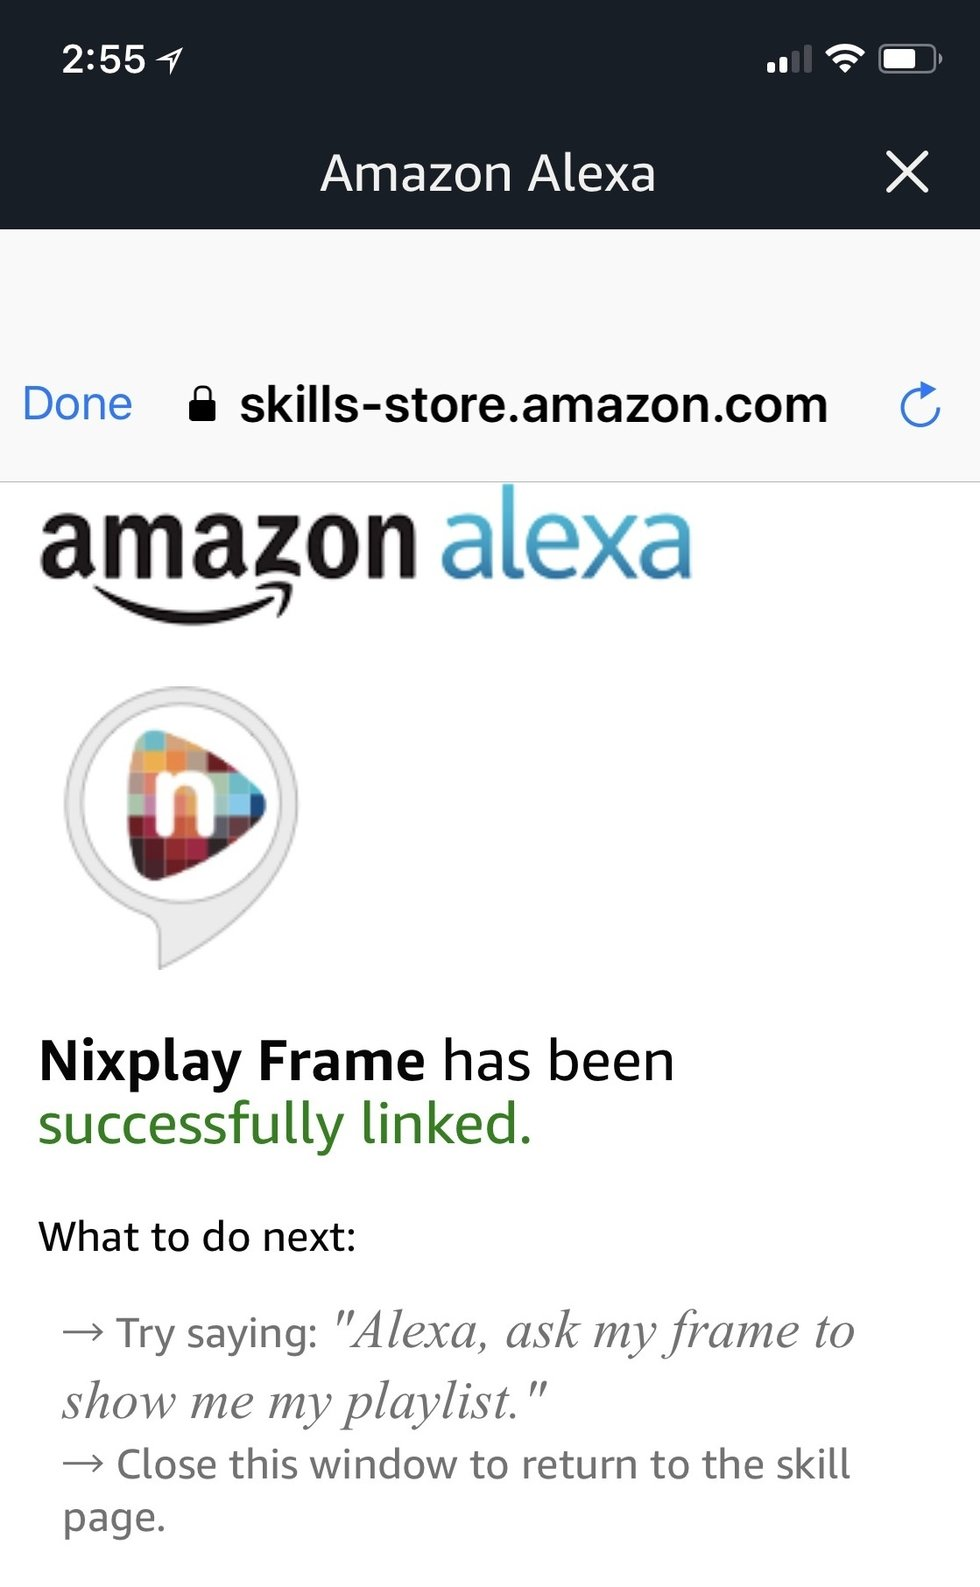 Picture of Alexa skill page in Alexa app for Nixplay Seed.